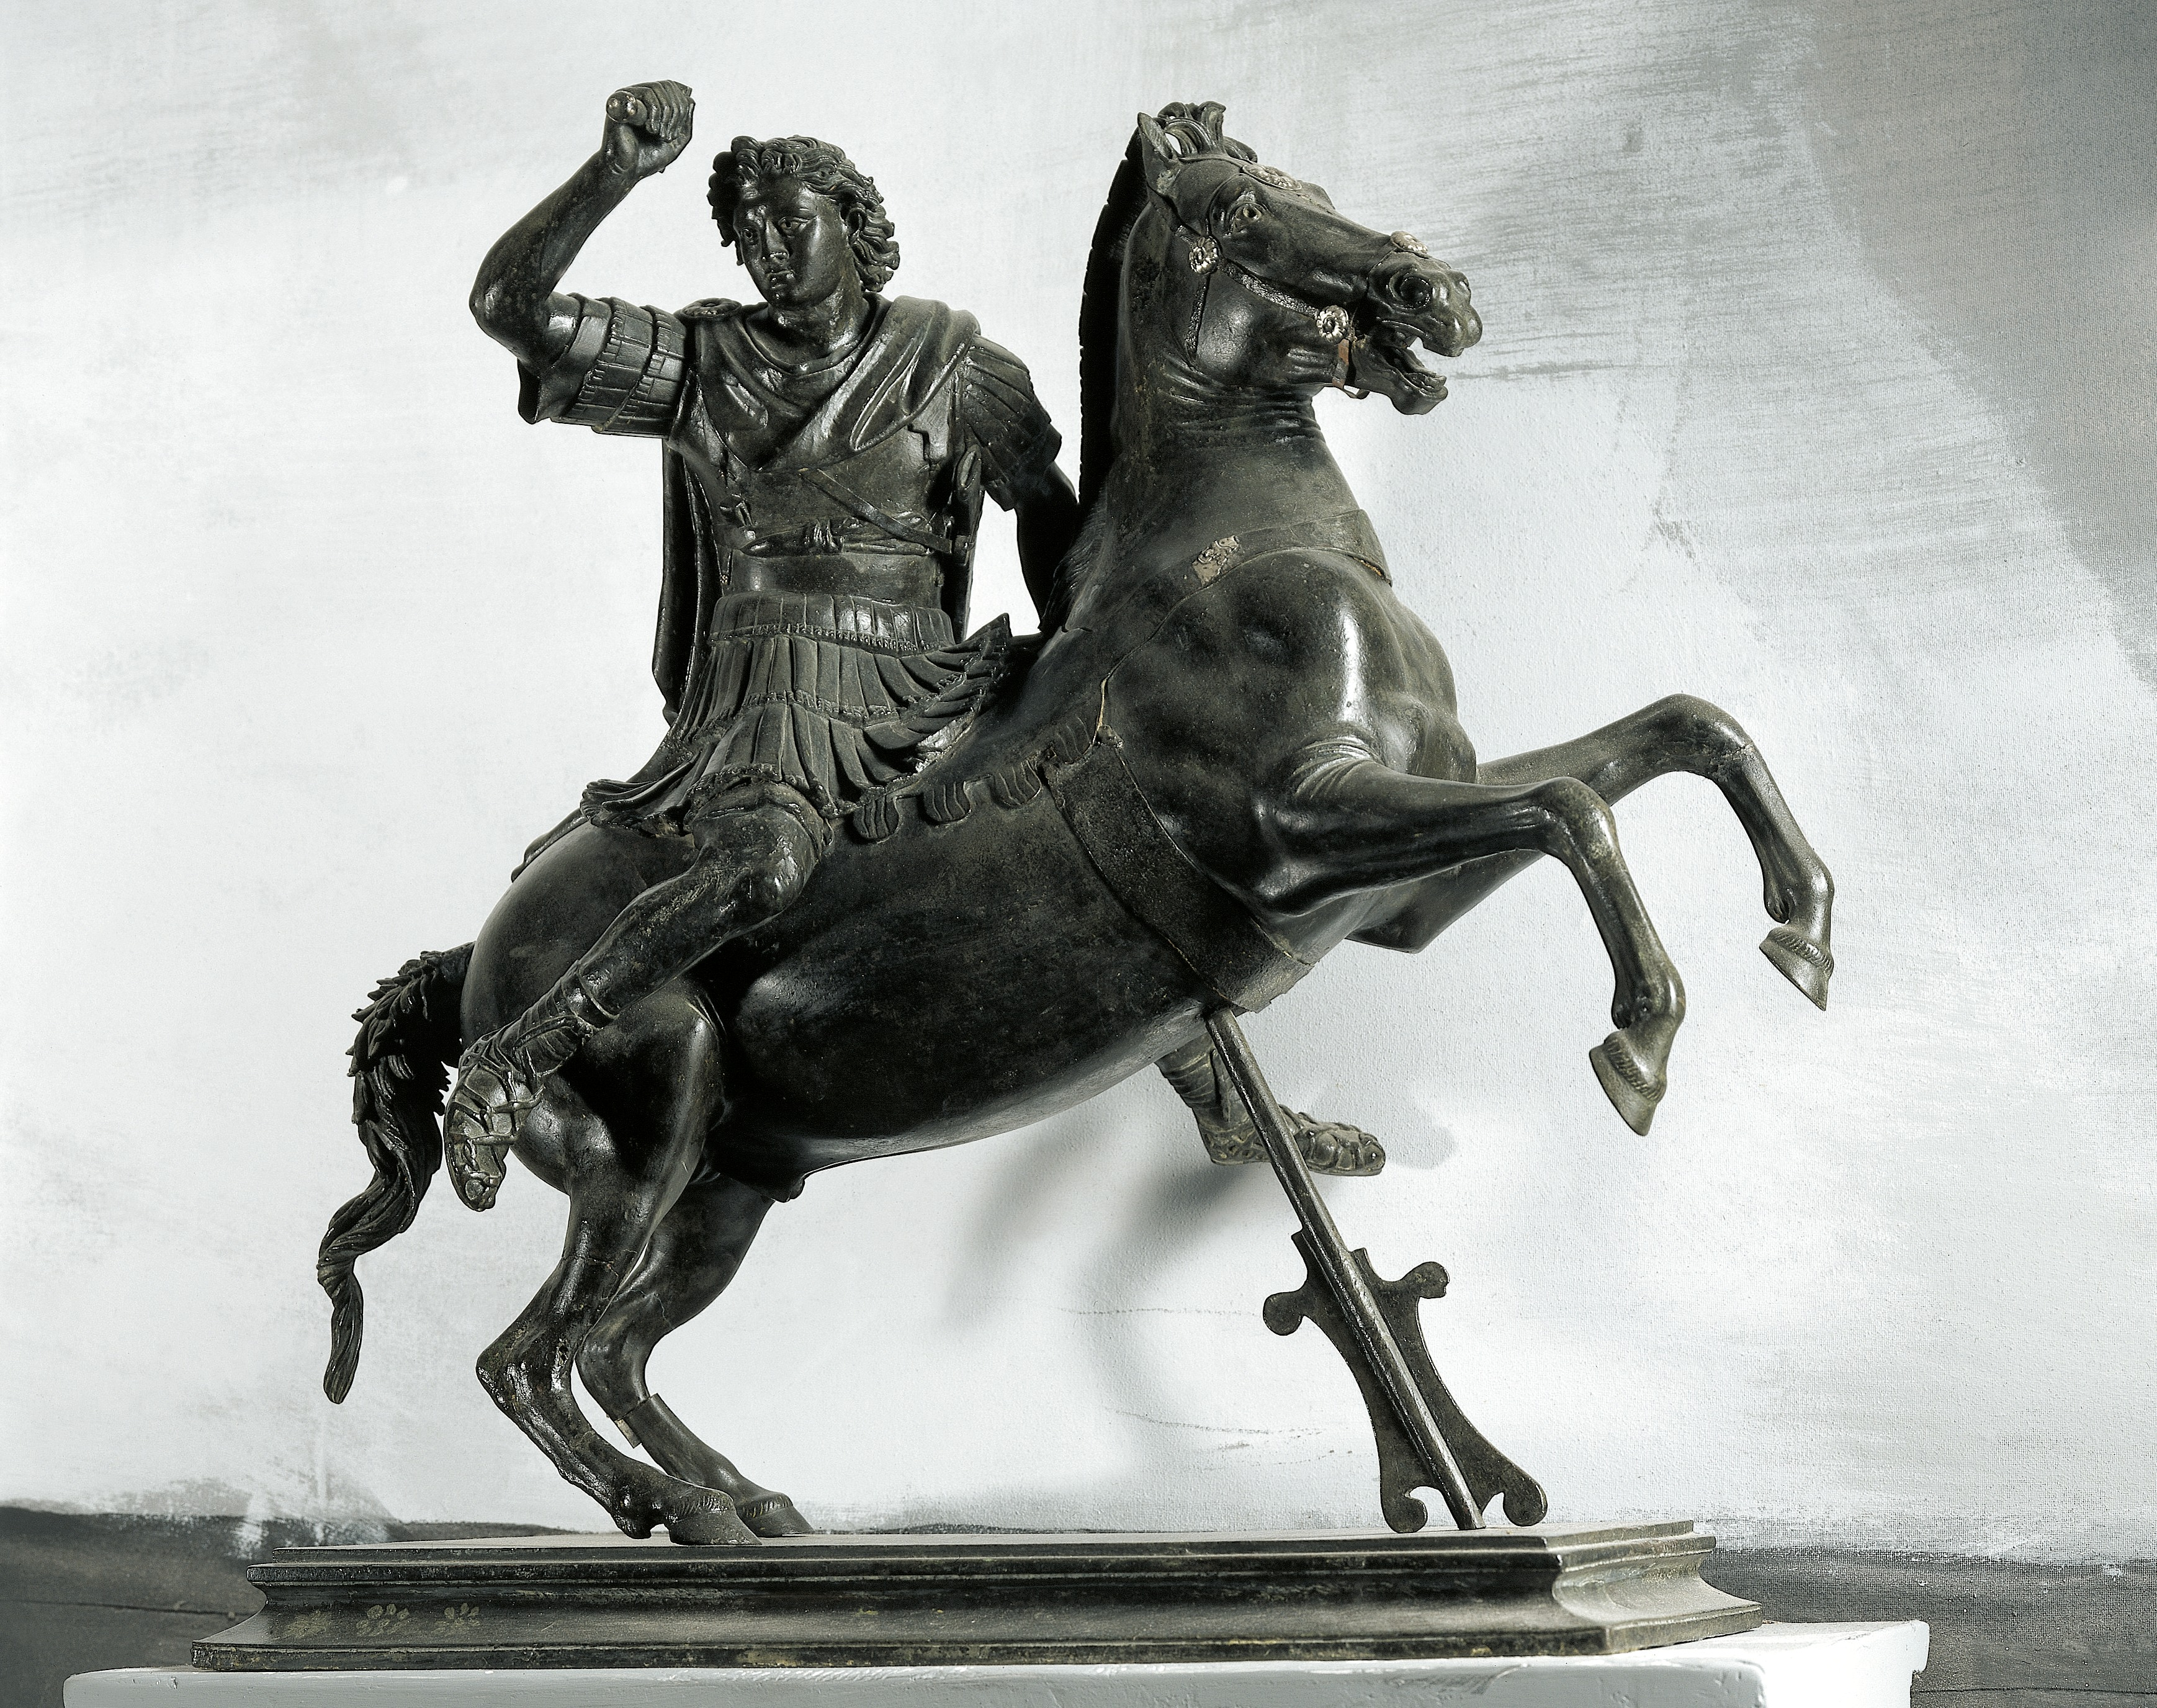 8 Surprising Facts about Alexander the Great - HISTORY